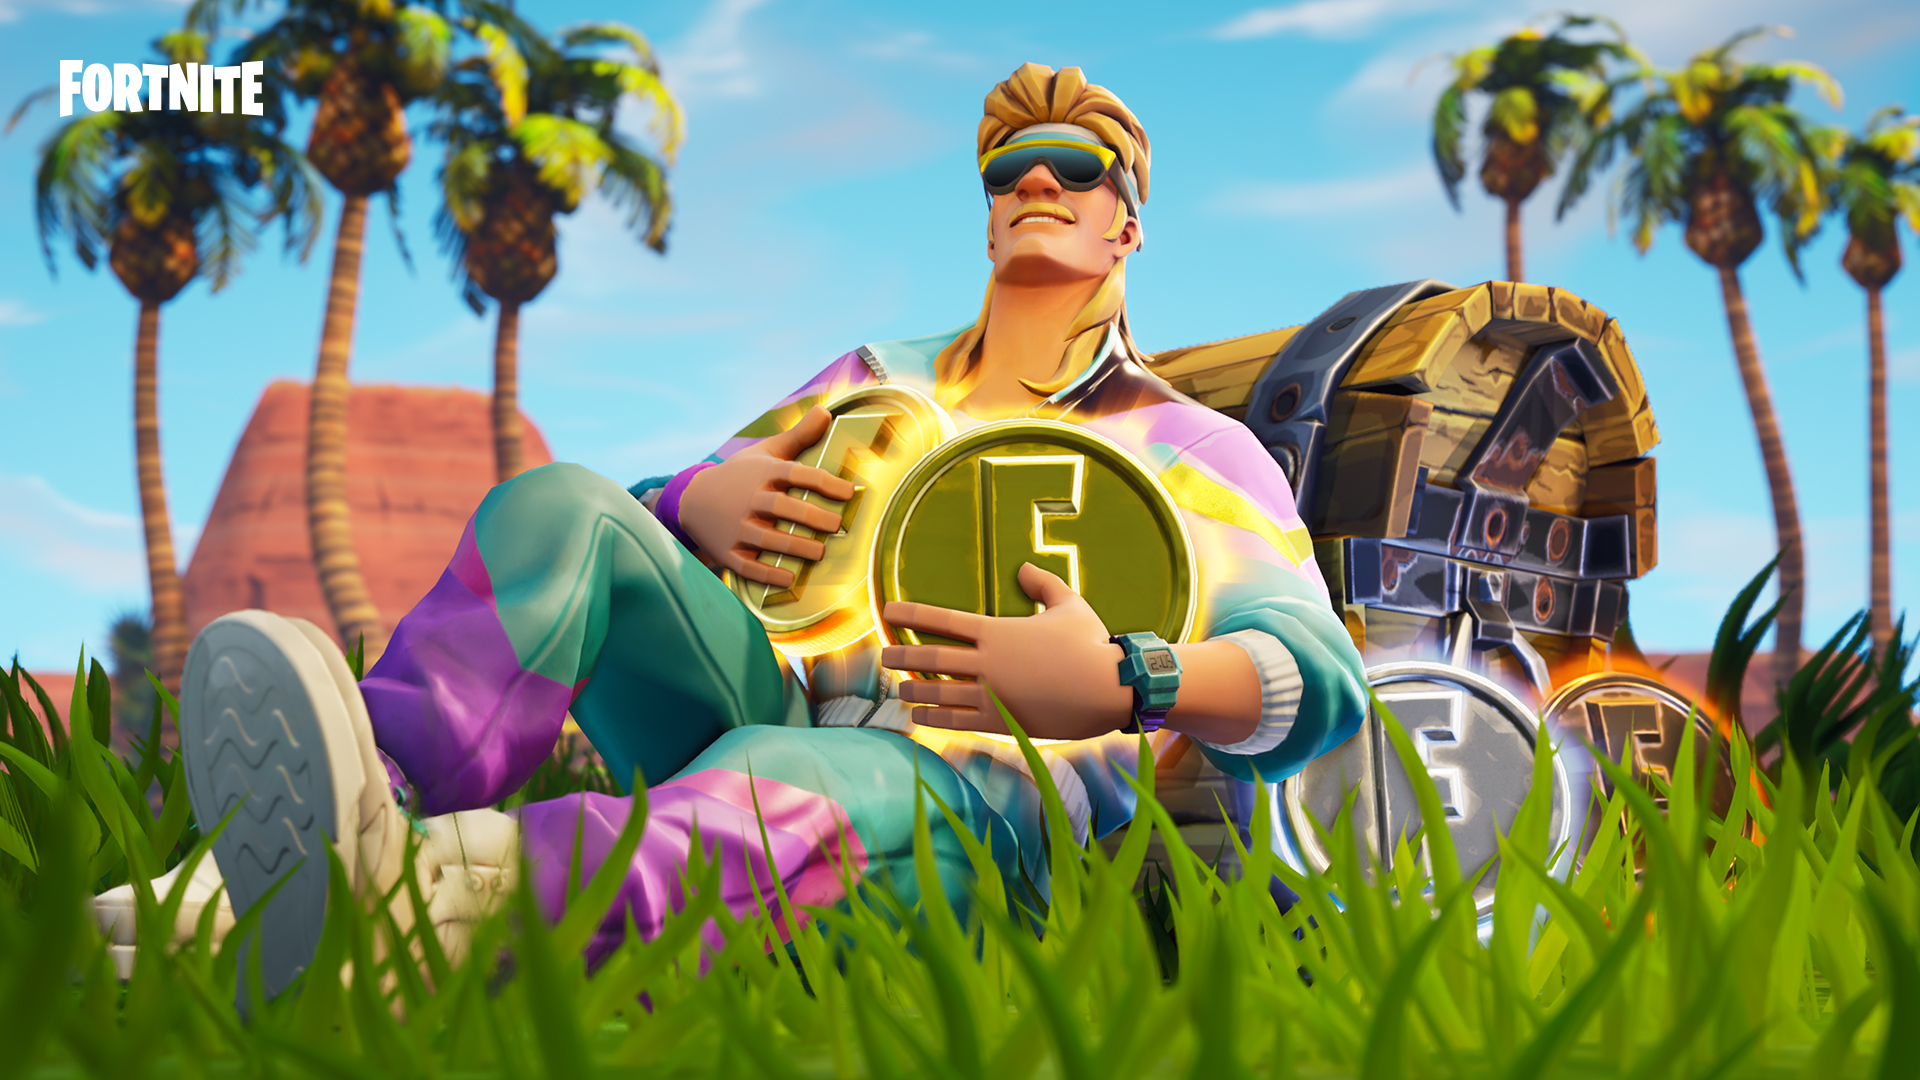 fortnite patch v5 30 change list - how to run faster in fortnite xbox one